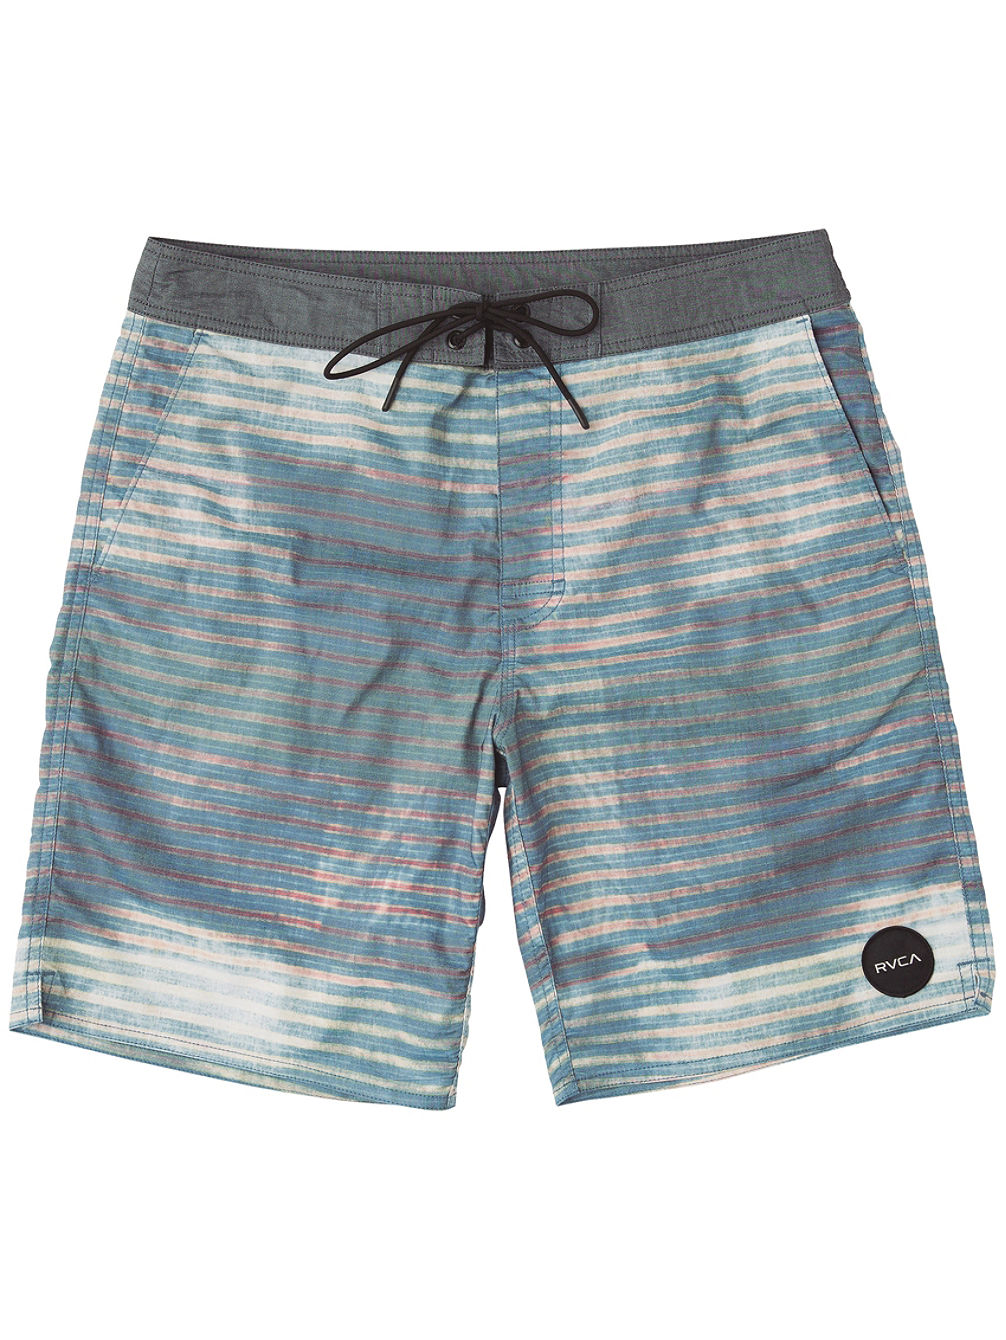 Boppa Stripe Trunk Boardshorts